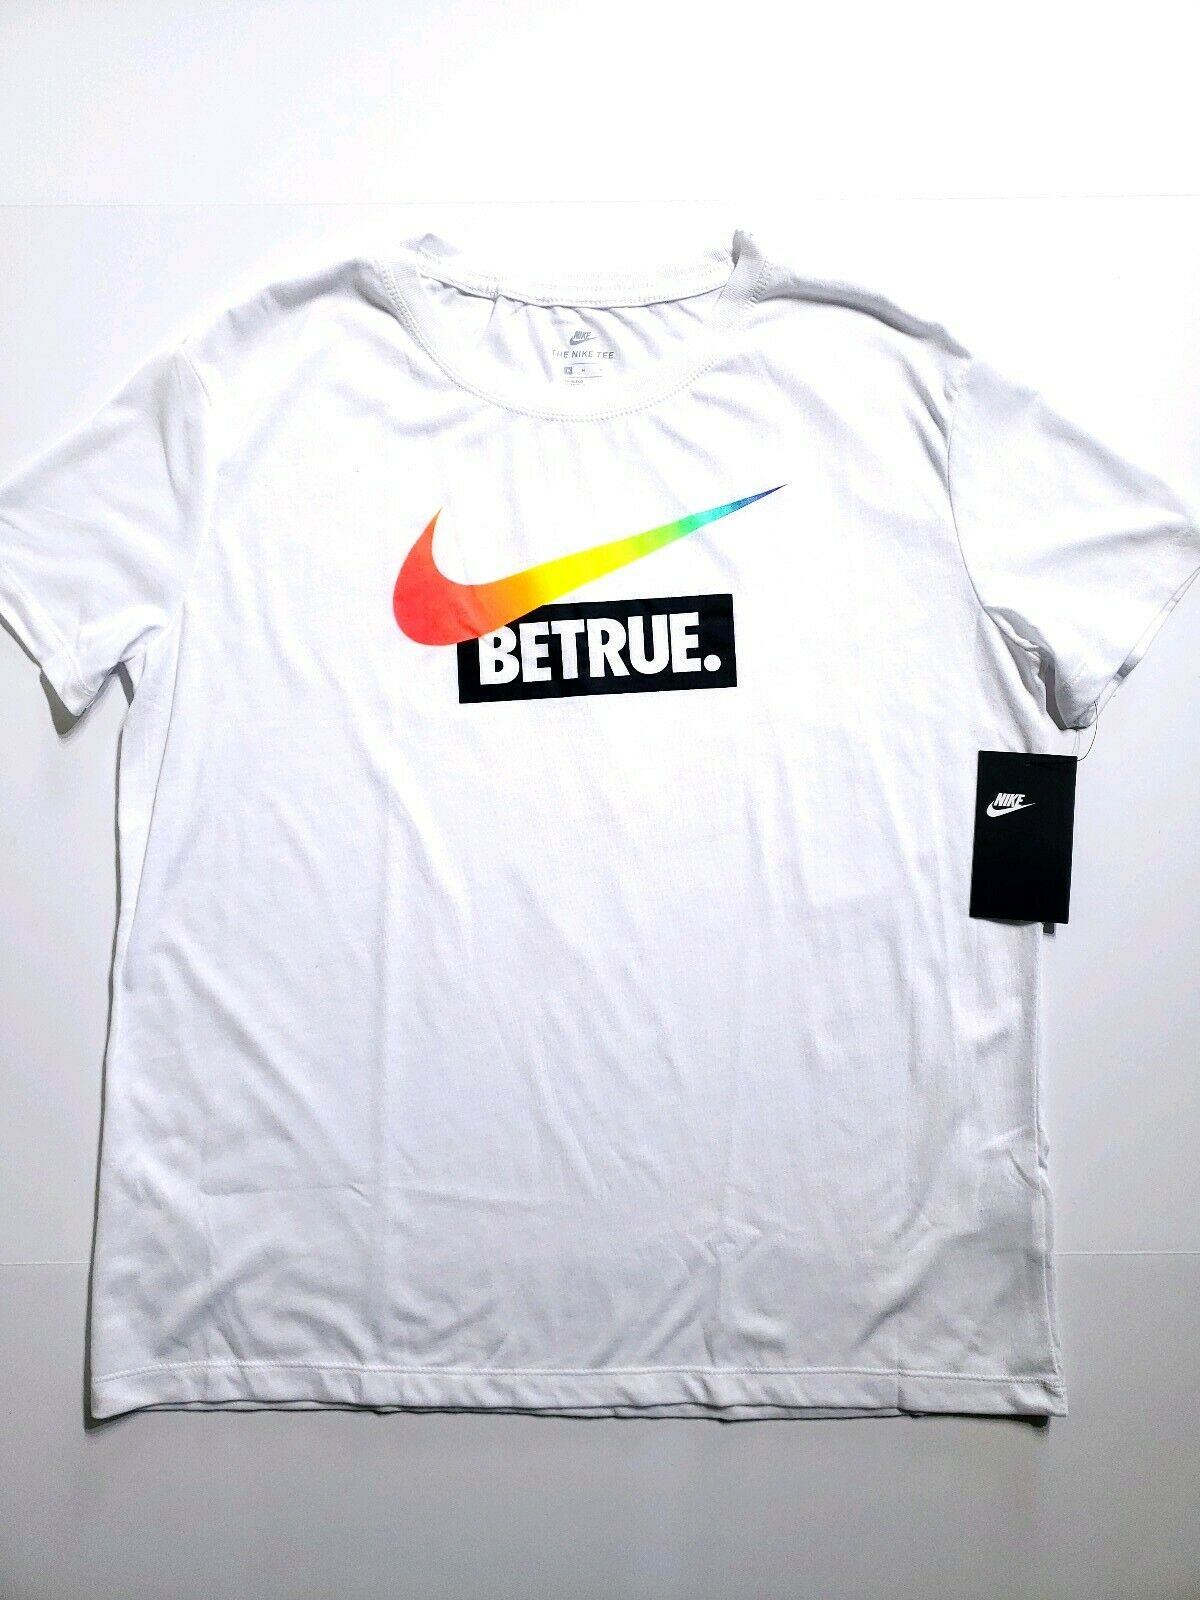 f60e6ef78d Nike Be True BETRUE T-shirt Tee Size Med White Rainbow